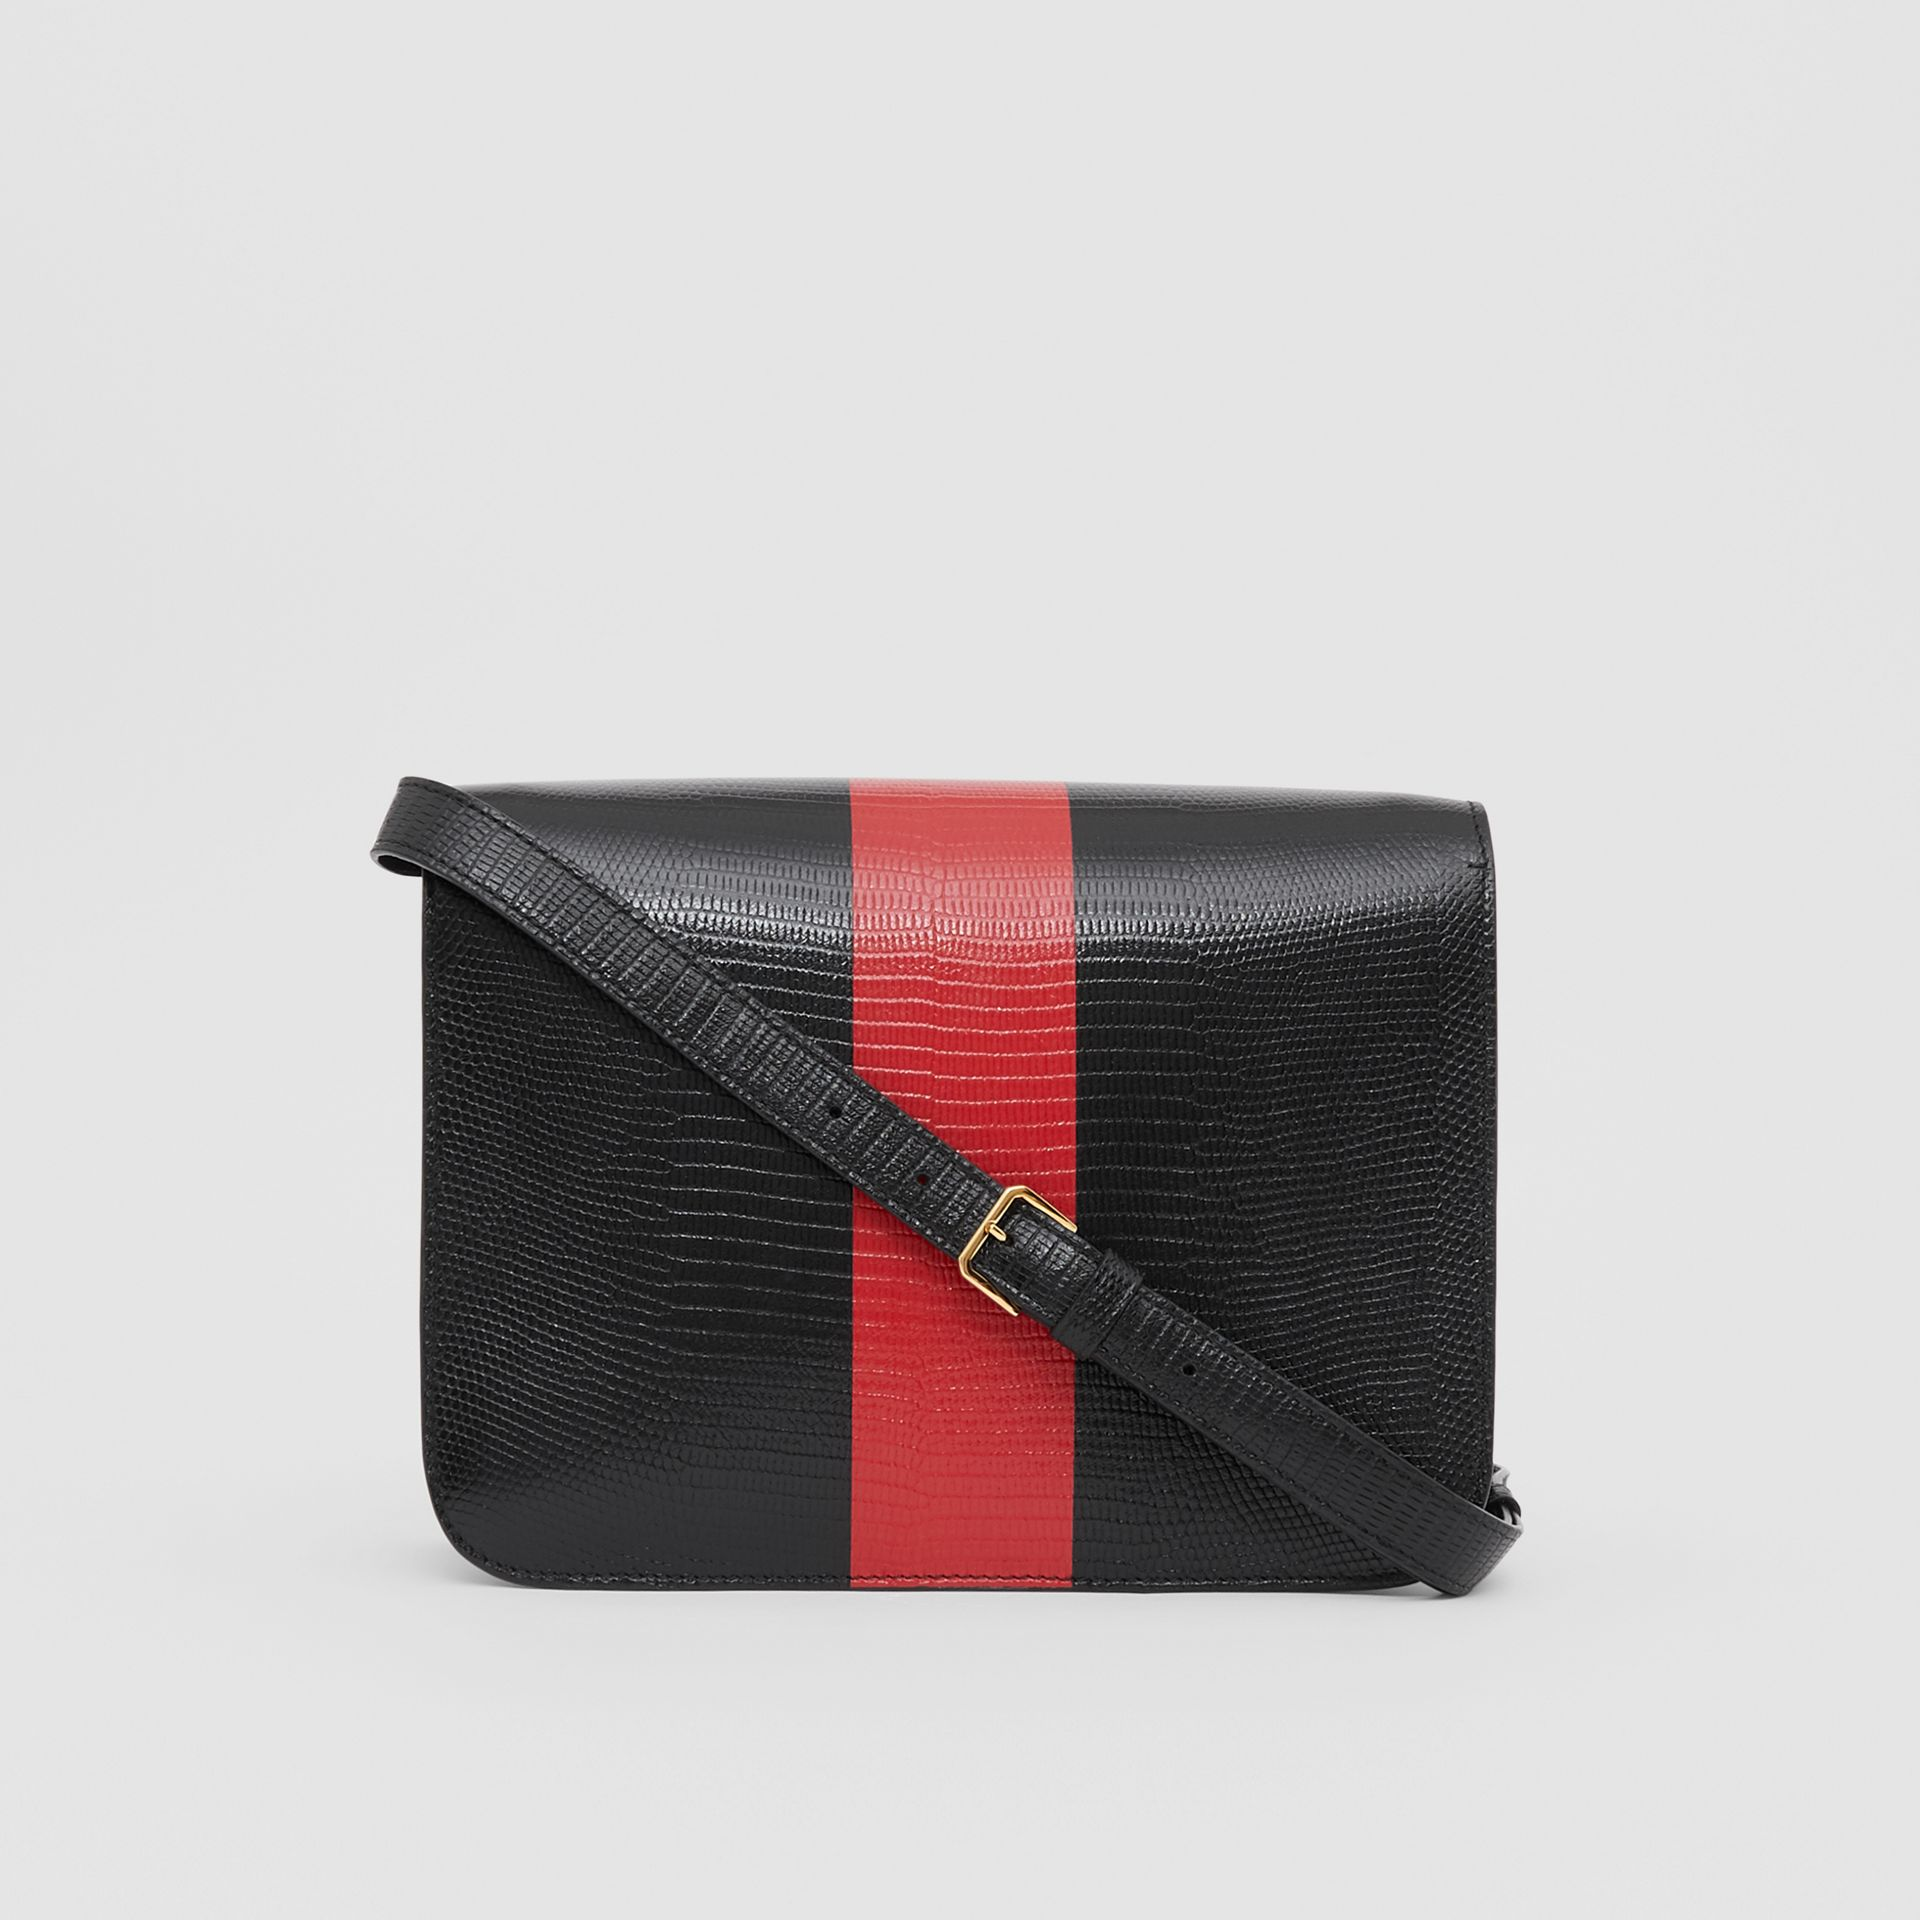 Medium Striped Embossed Leather TB Bag in Black - Women | Burberry United States - gallery image 7